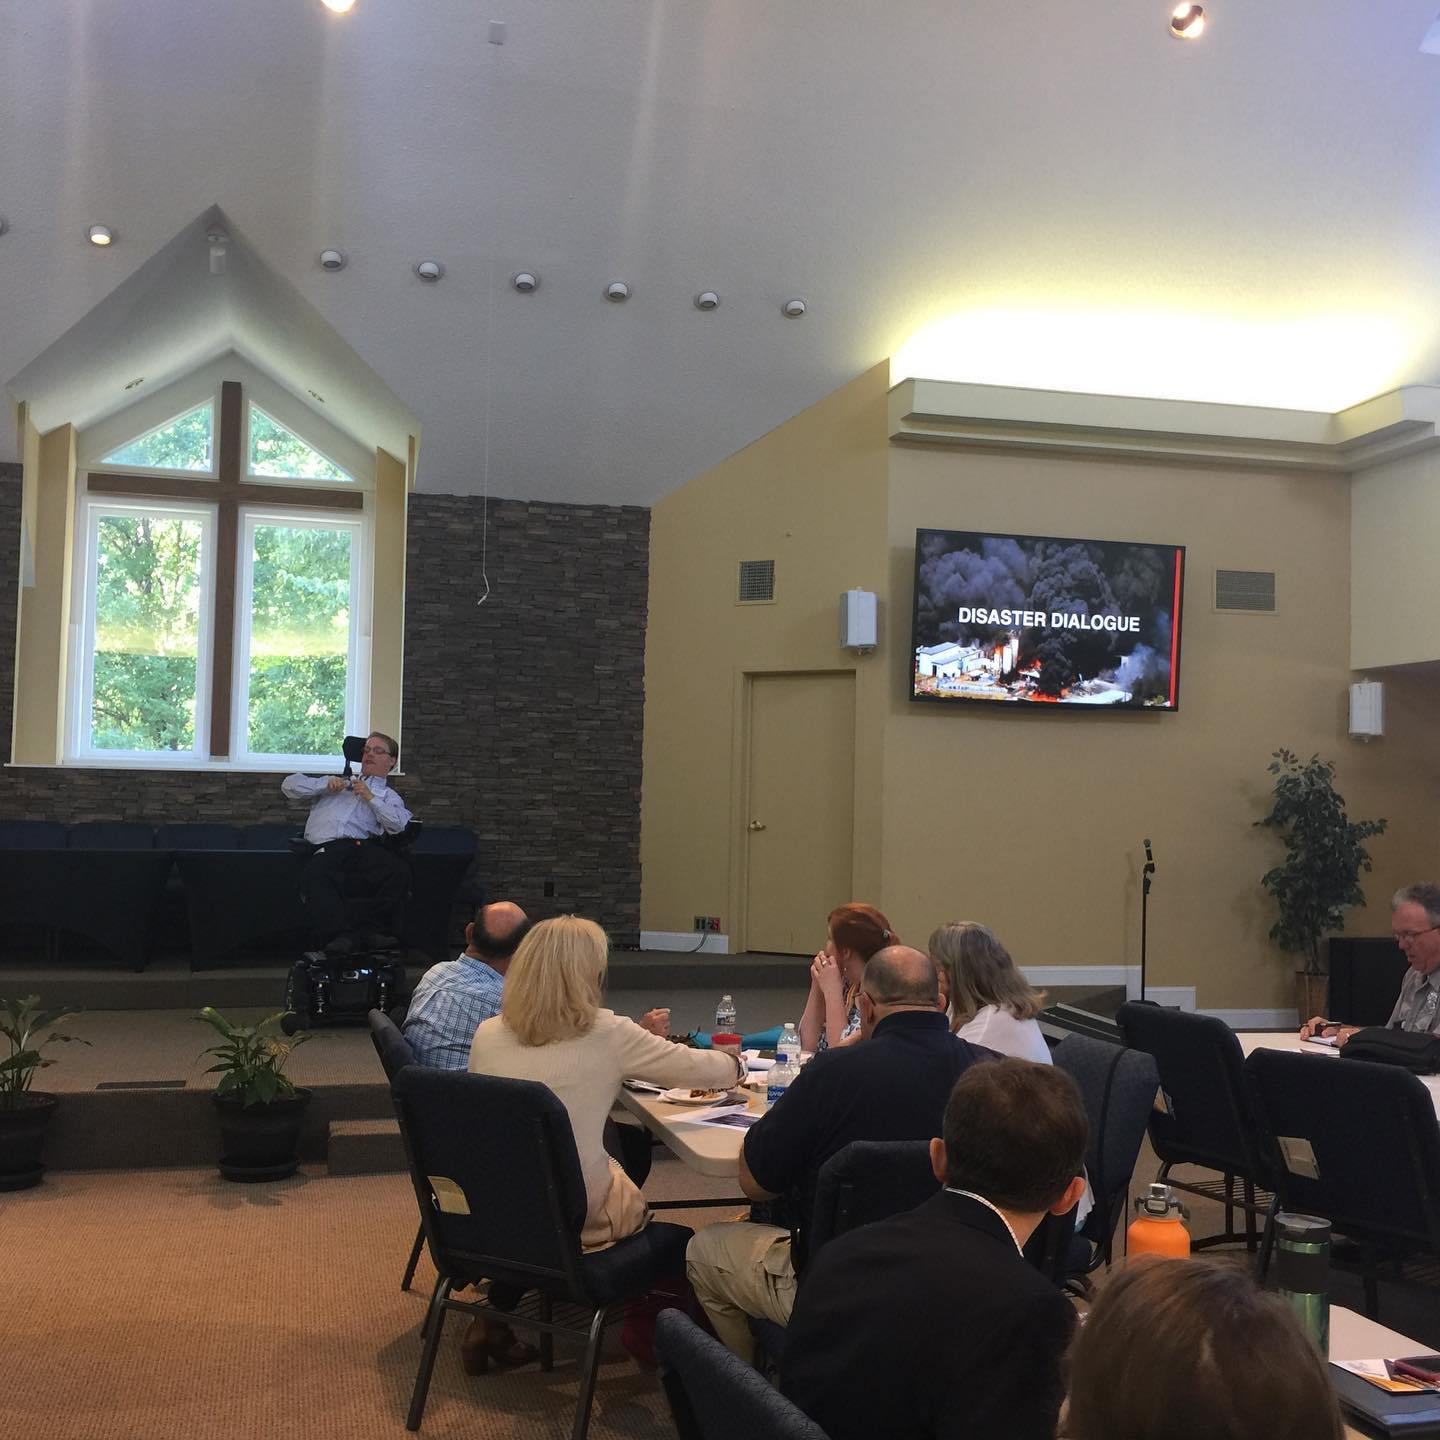 PHOTO: Matthew on stage, in a blue shirt, in his wheelchair. He front of an audience listening to his keynote. A TV to the right of him reads Disaster Dialog. There is also a picture of a fire on the screen. This keynote took place as part of The Virginia Mass Care Symposium.